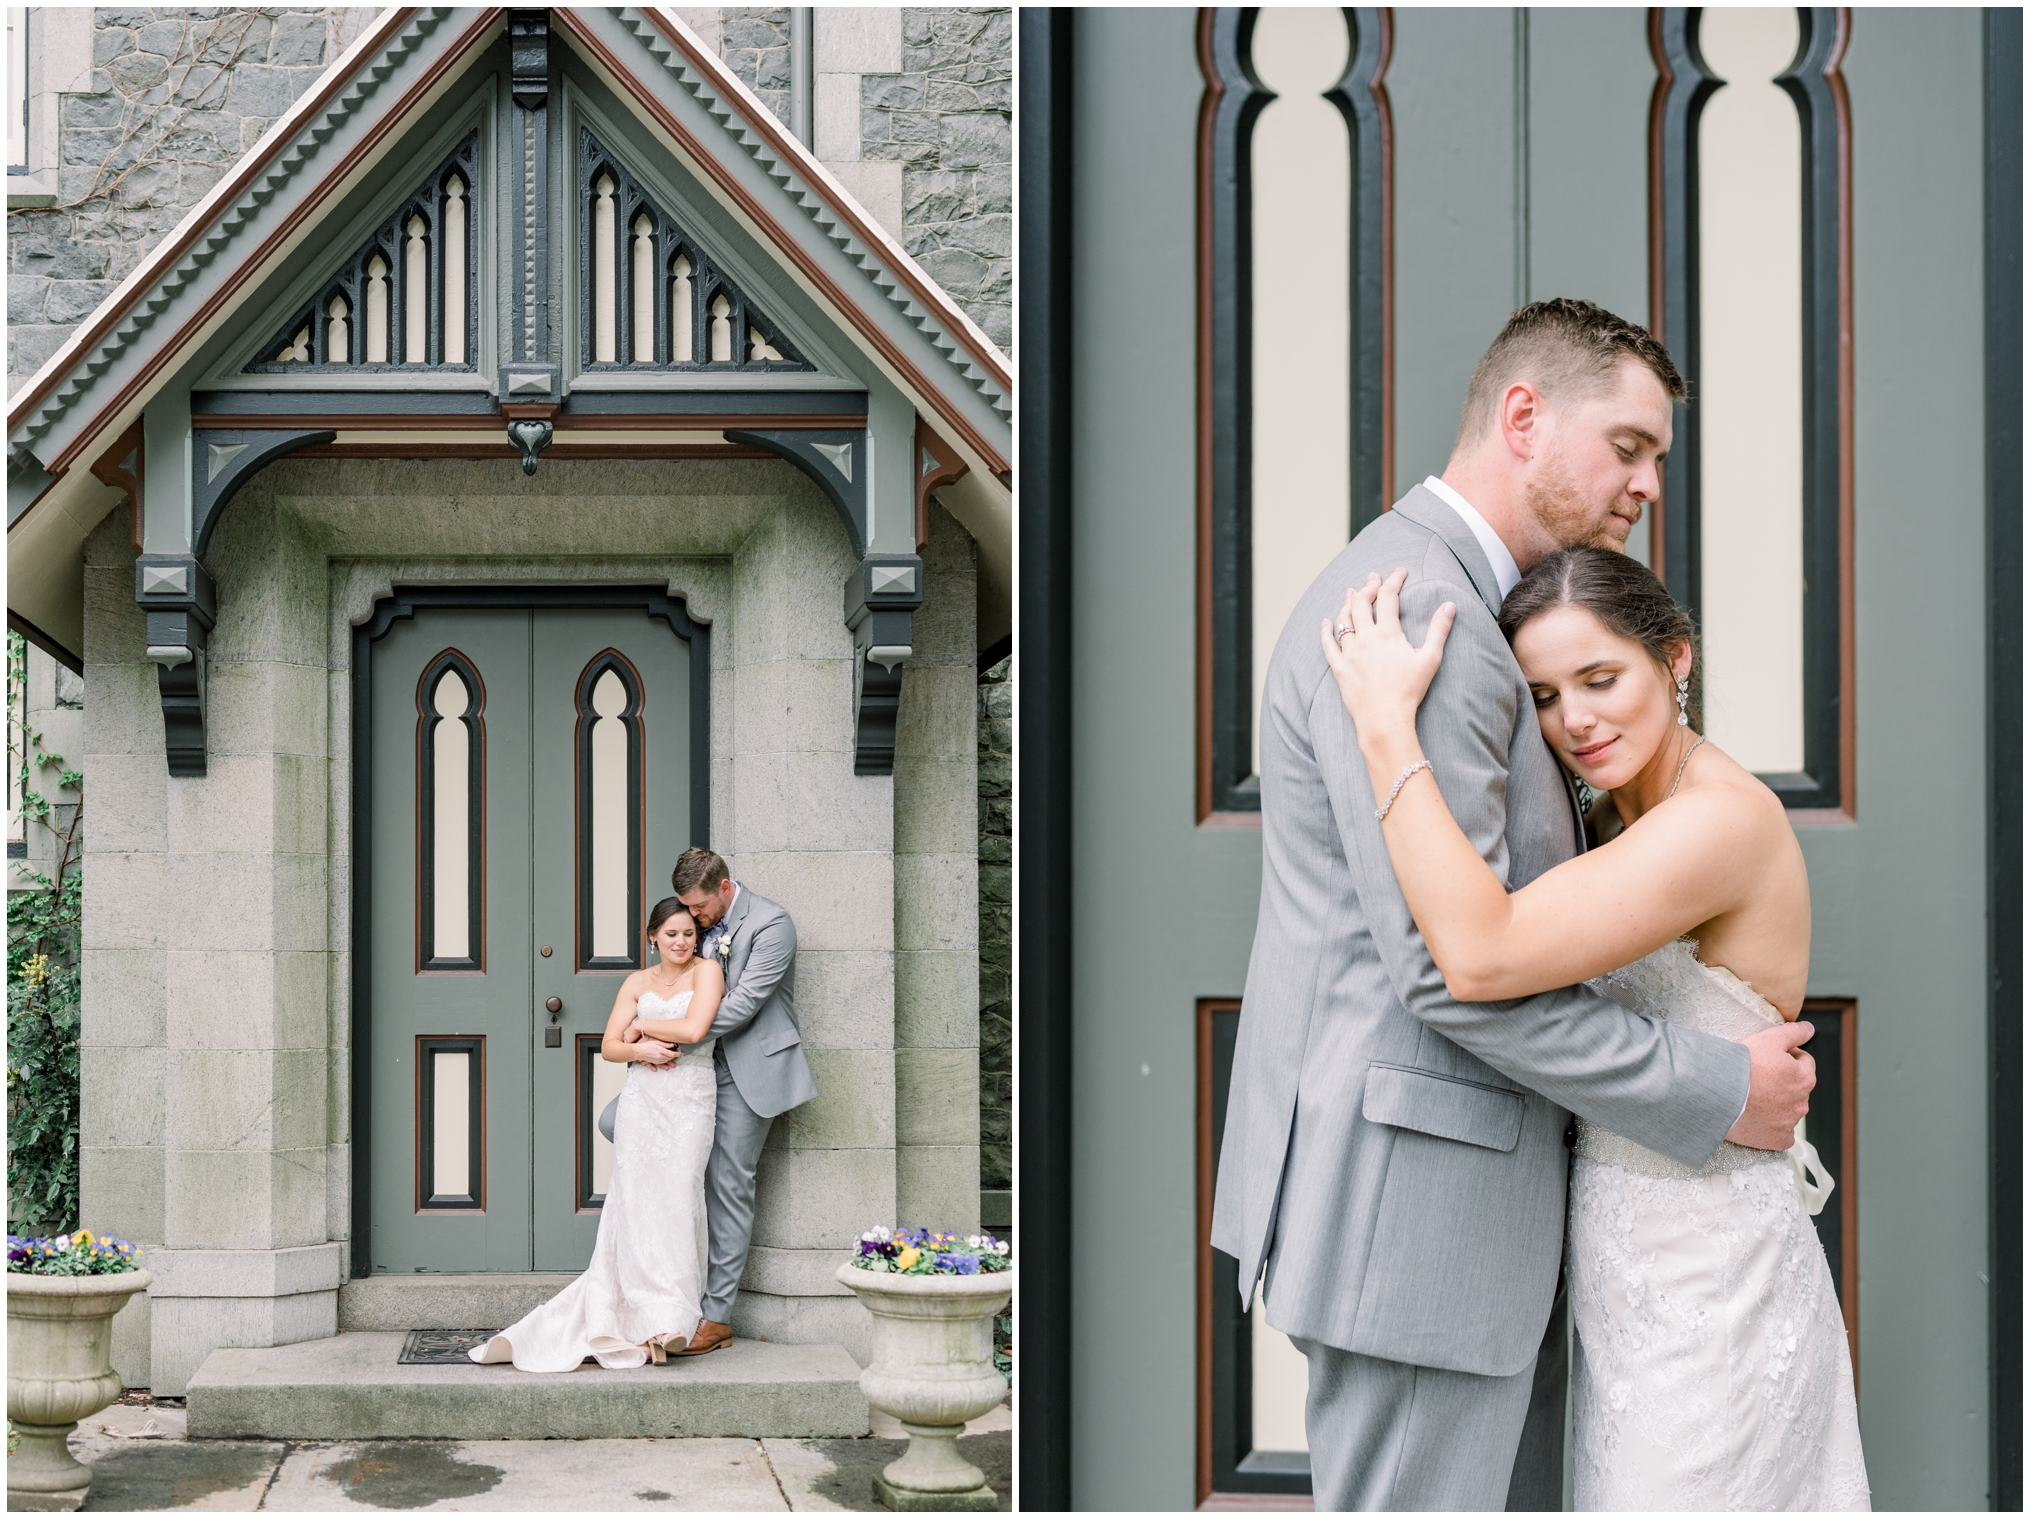 Krista Brackin Photography | April Wedding at The Carriage House at Rockwood Park_0083.jpg